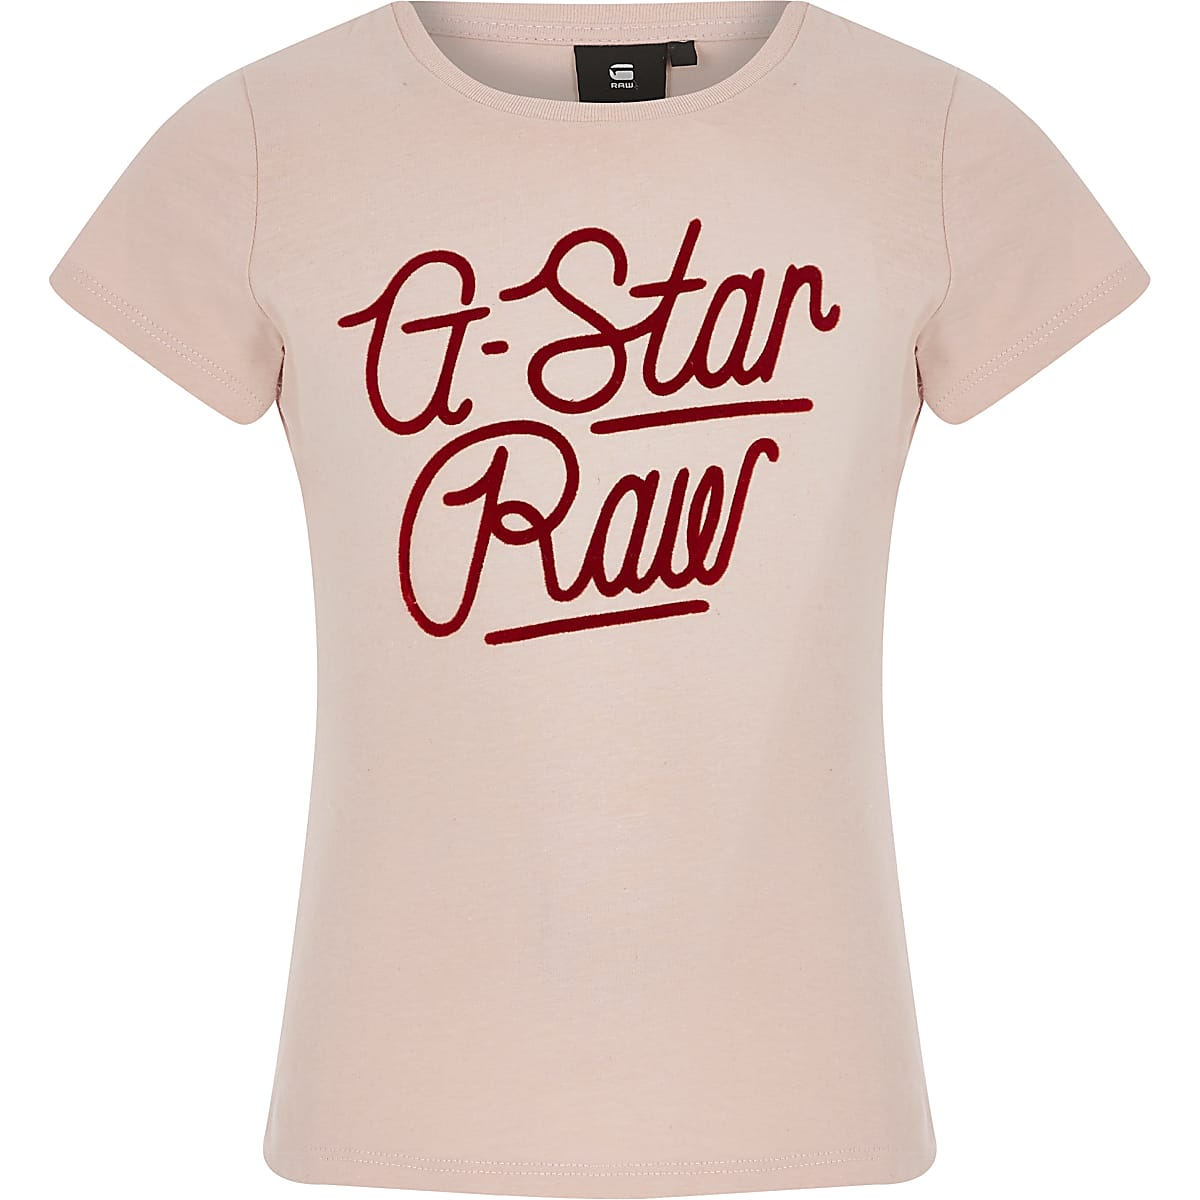 Girls G-Star Raw light pink logo T-shirt